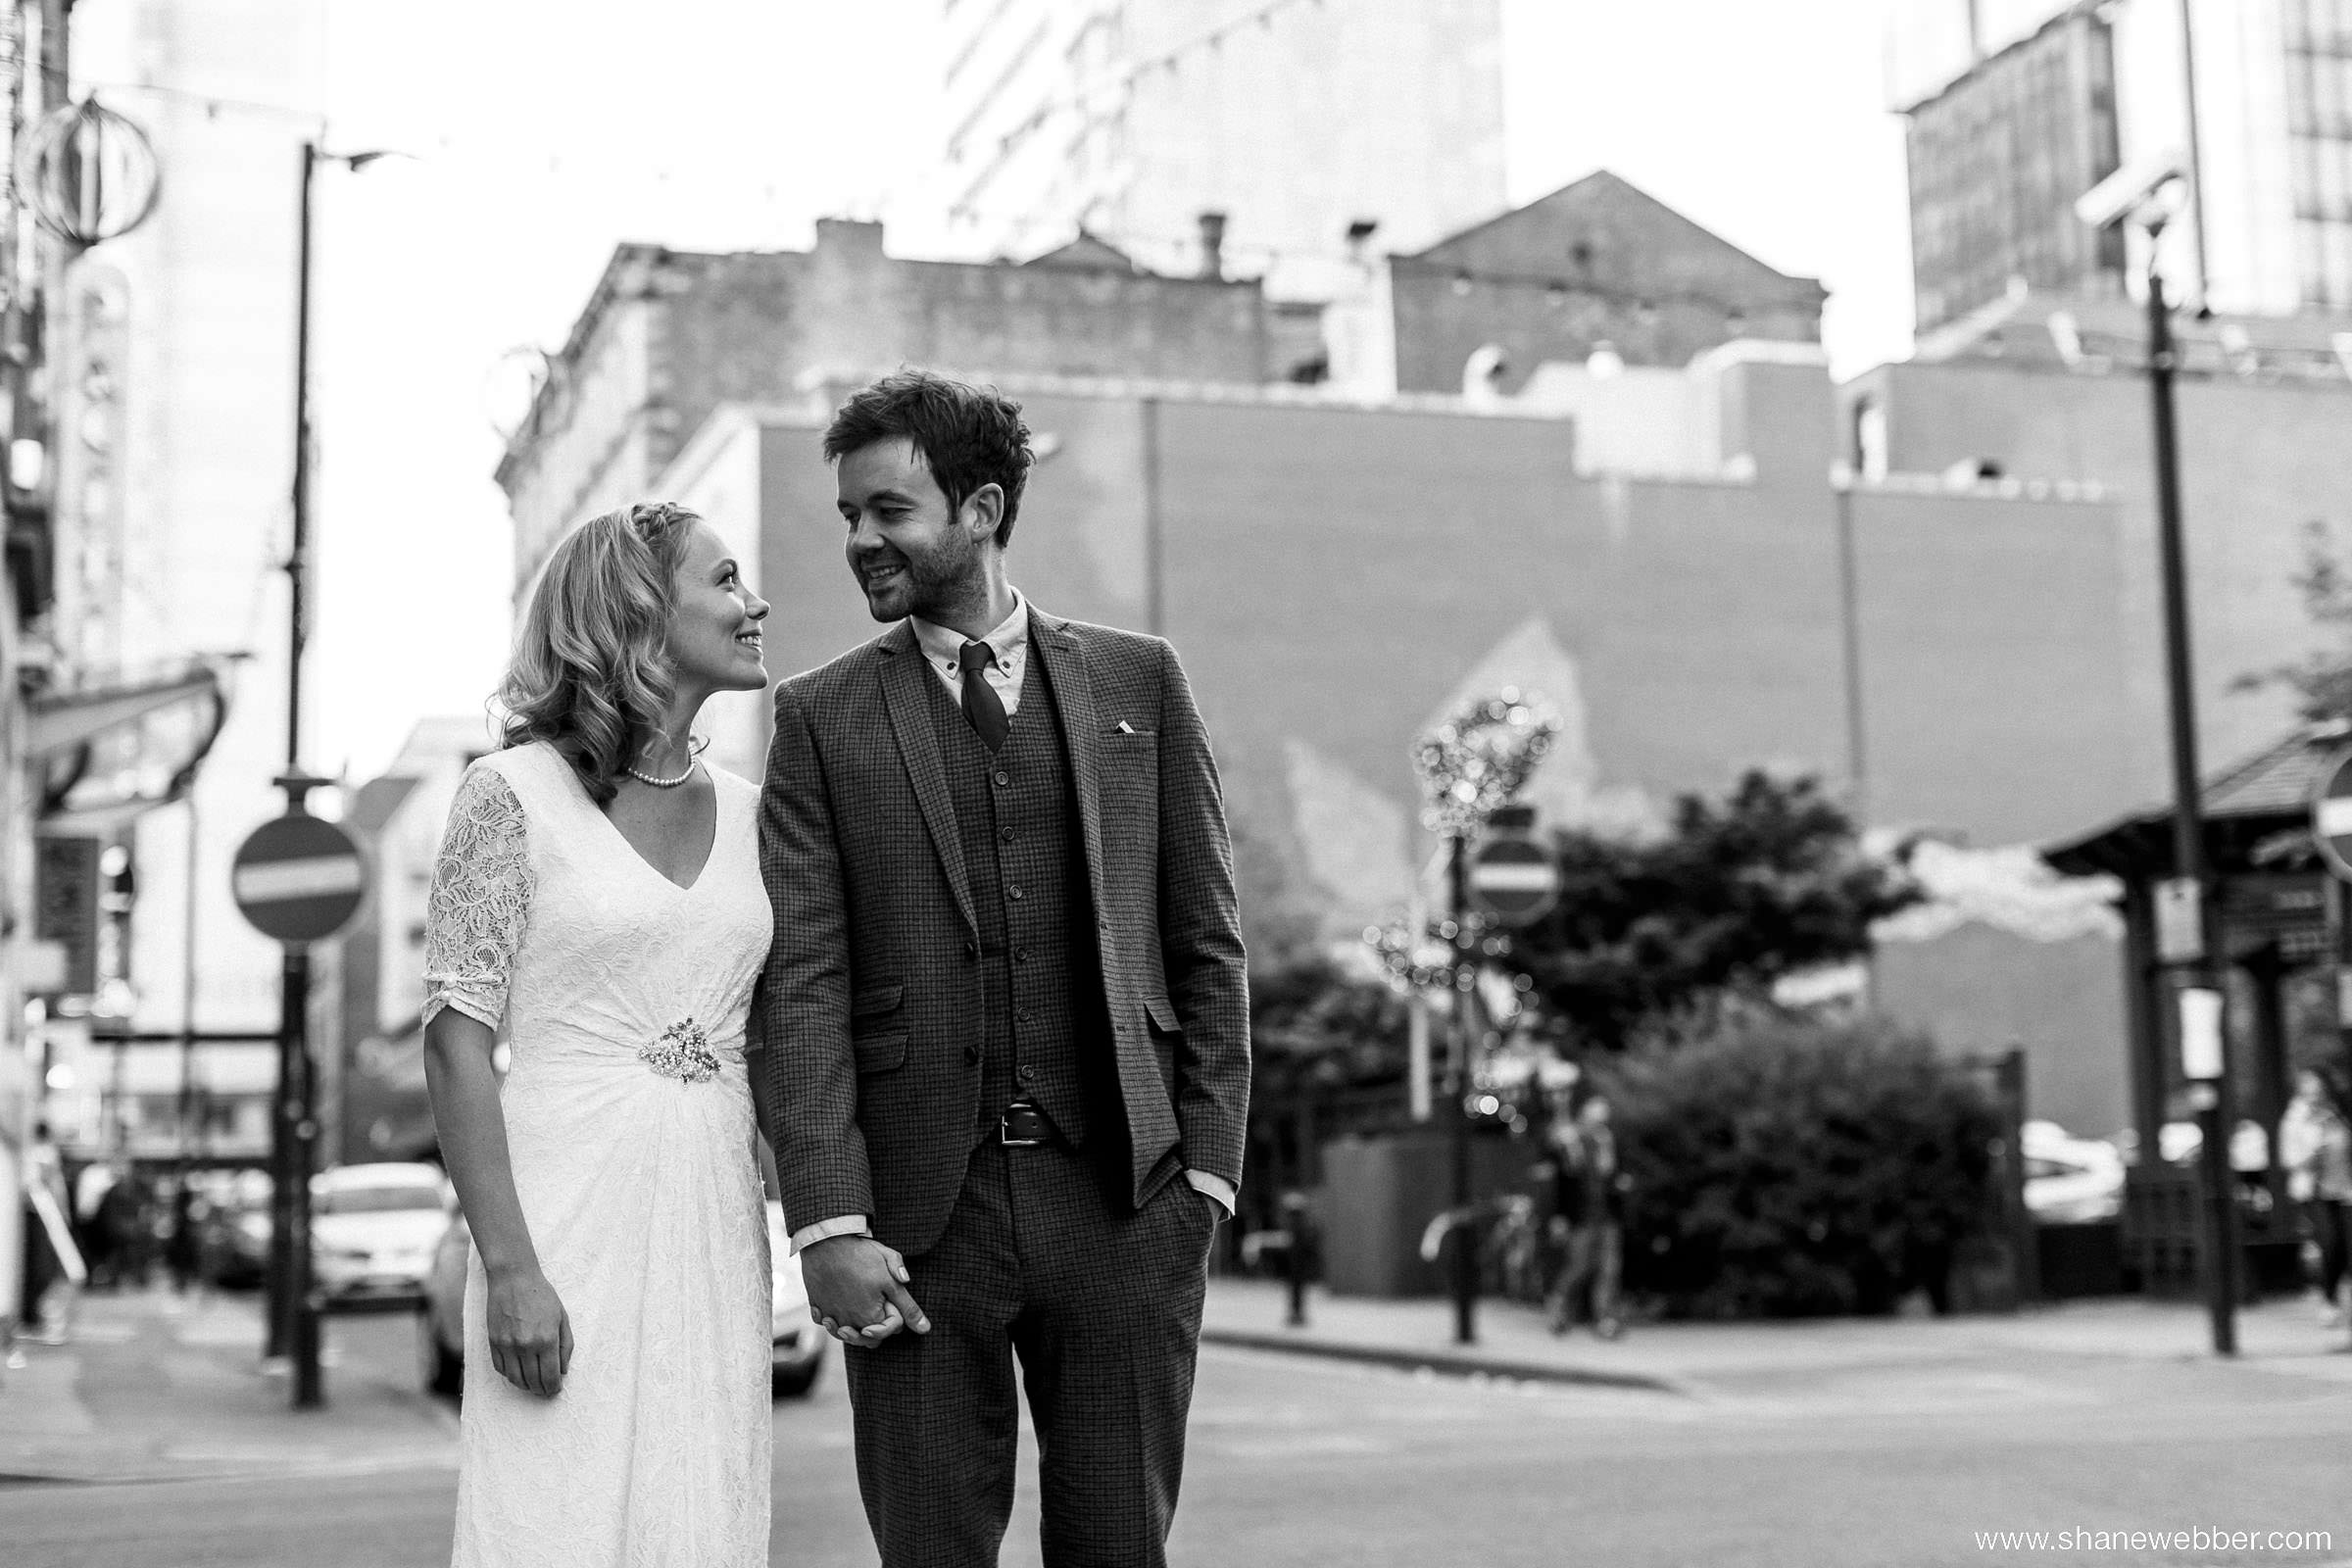 Urban wedding images